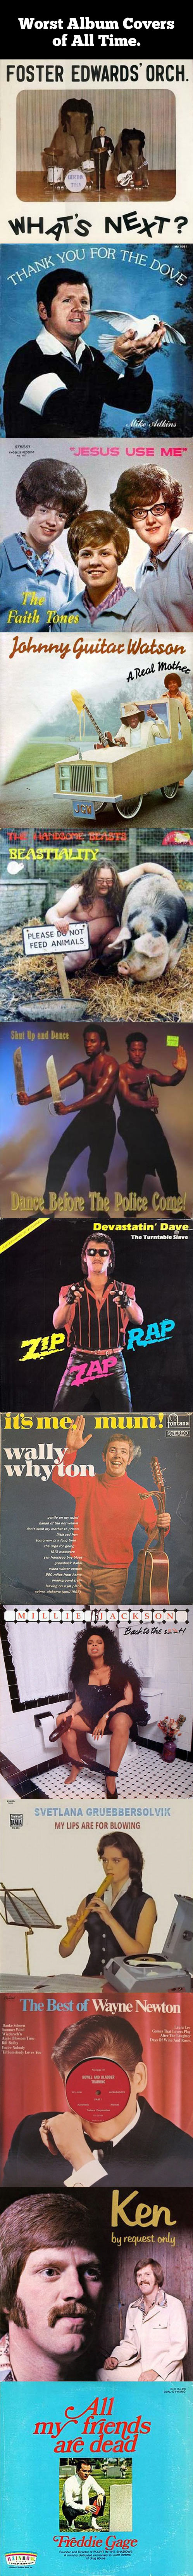 Worst album covers of all time…